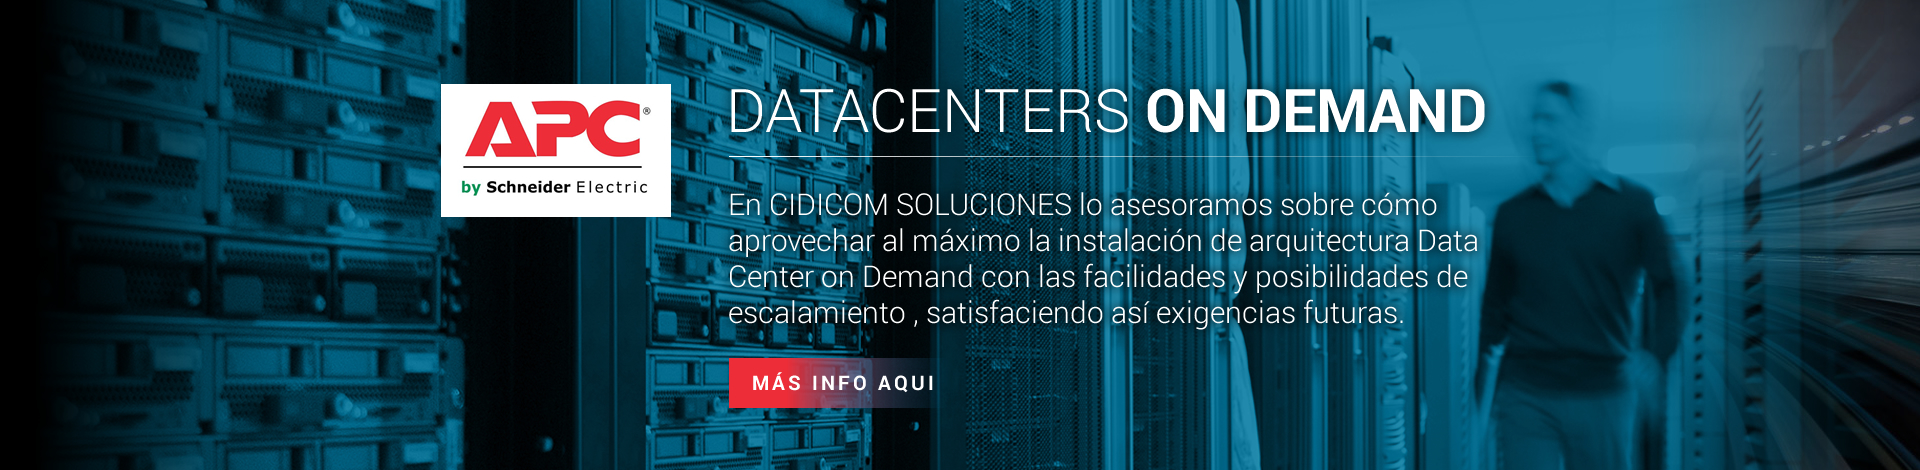 Datacenters ON DEMAND